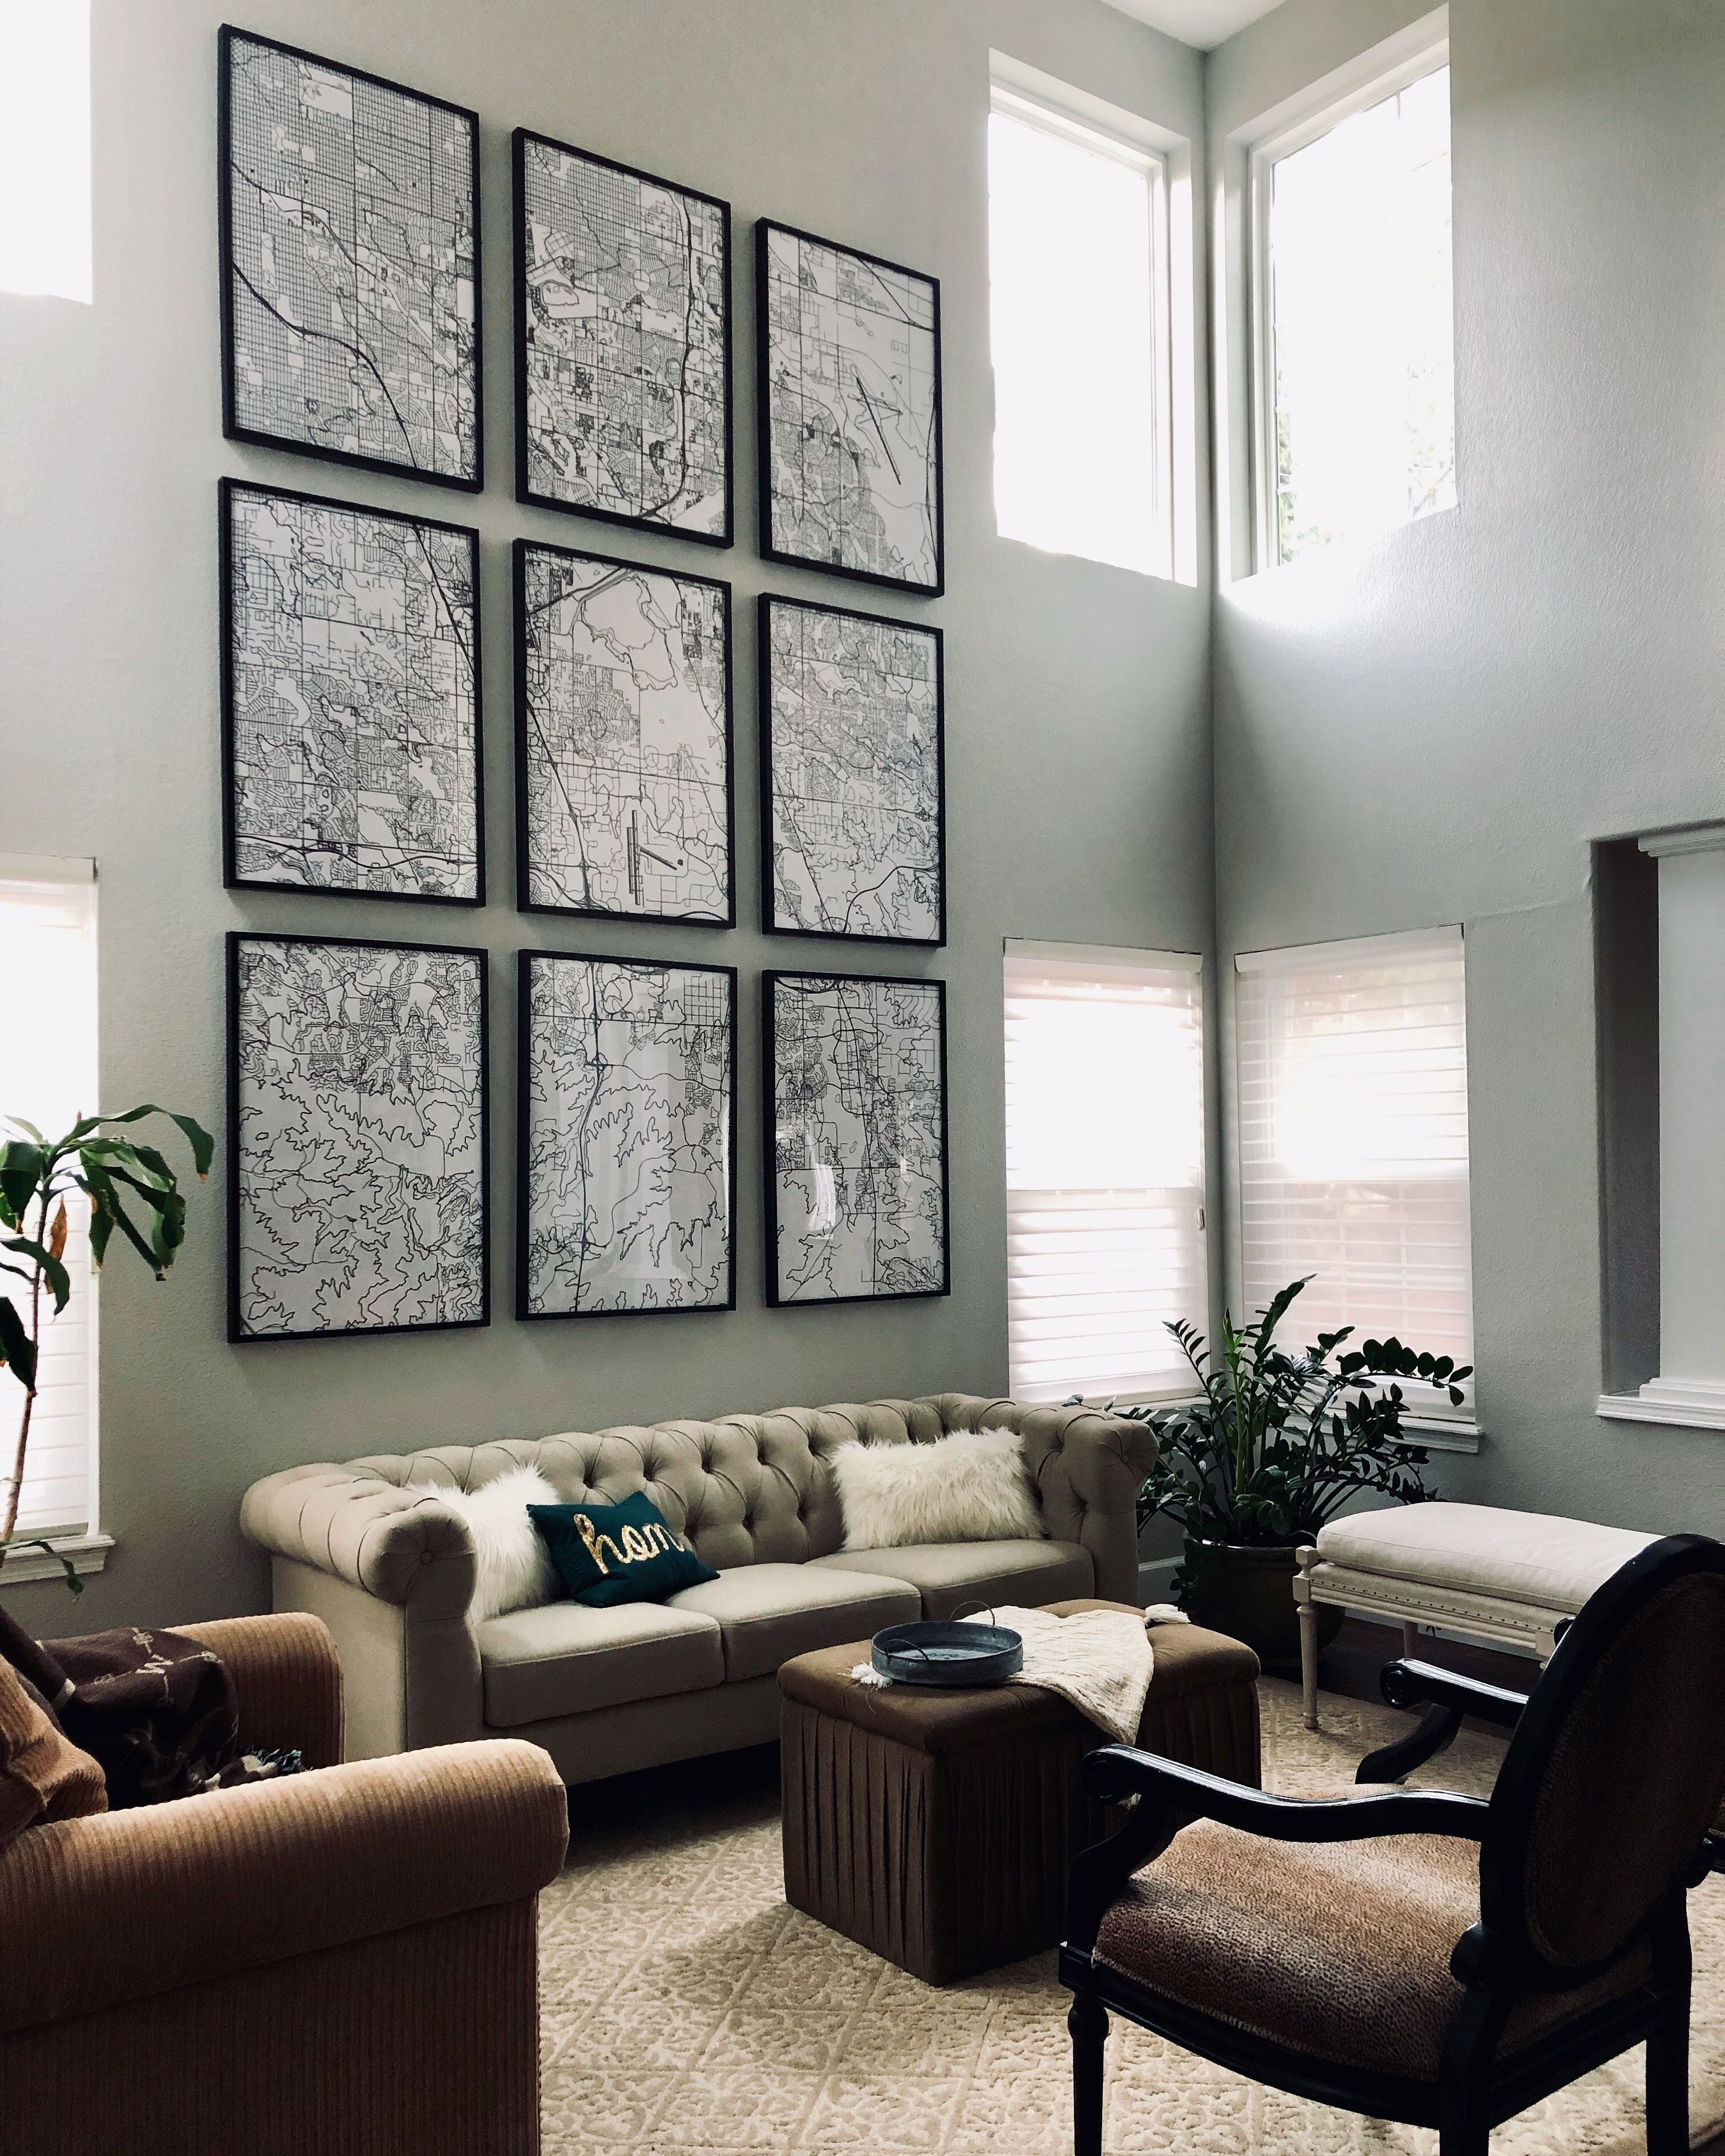 Map Wall Tall Ceiling Living Room Large Wall Decor Living Room